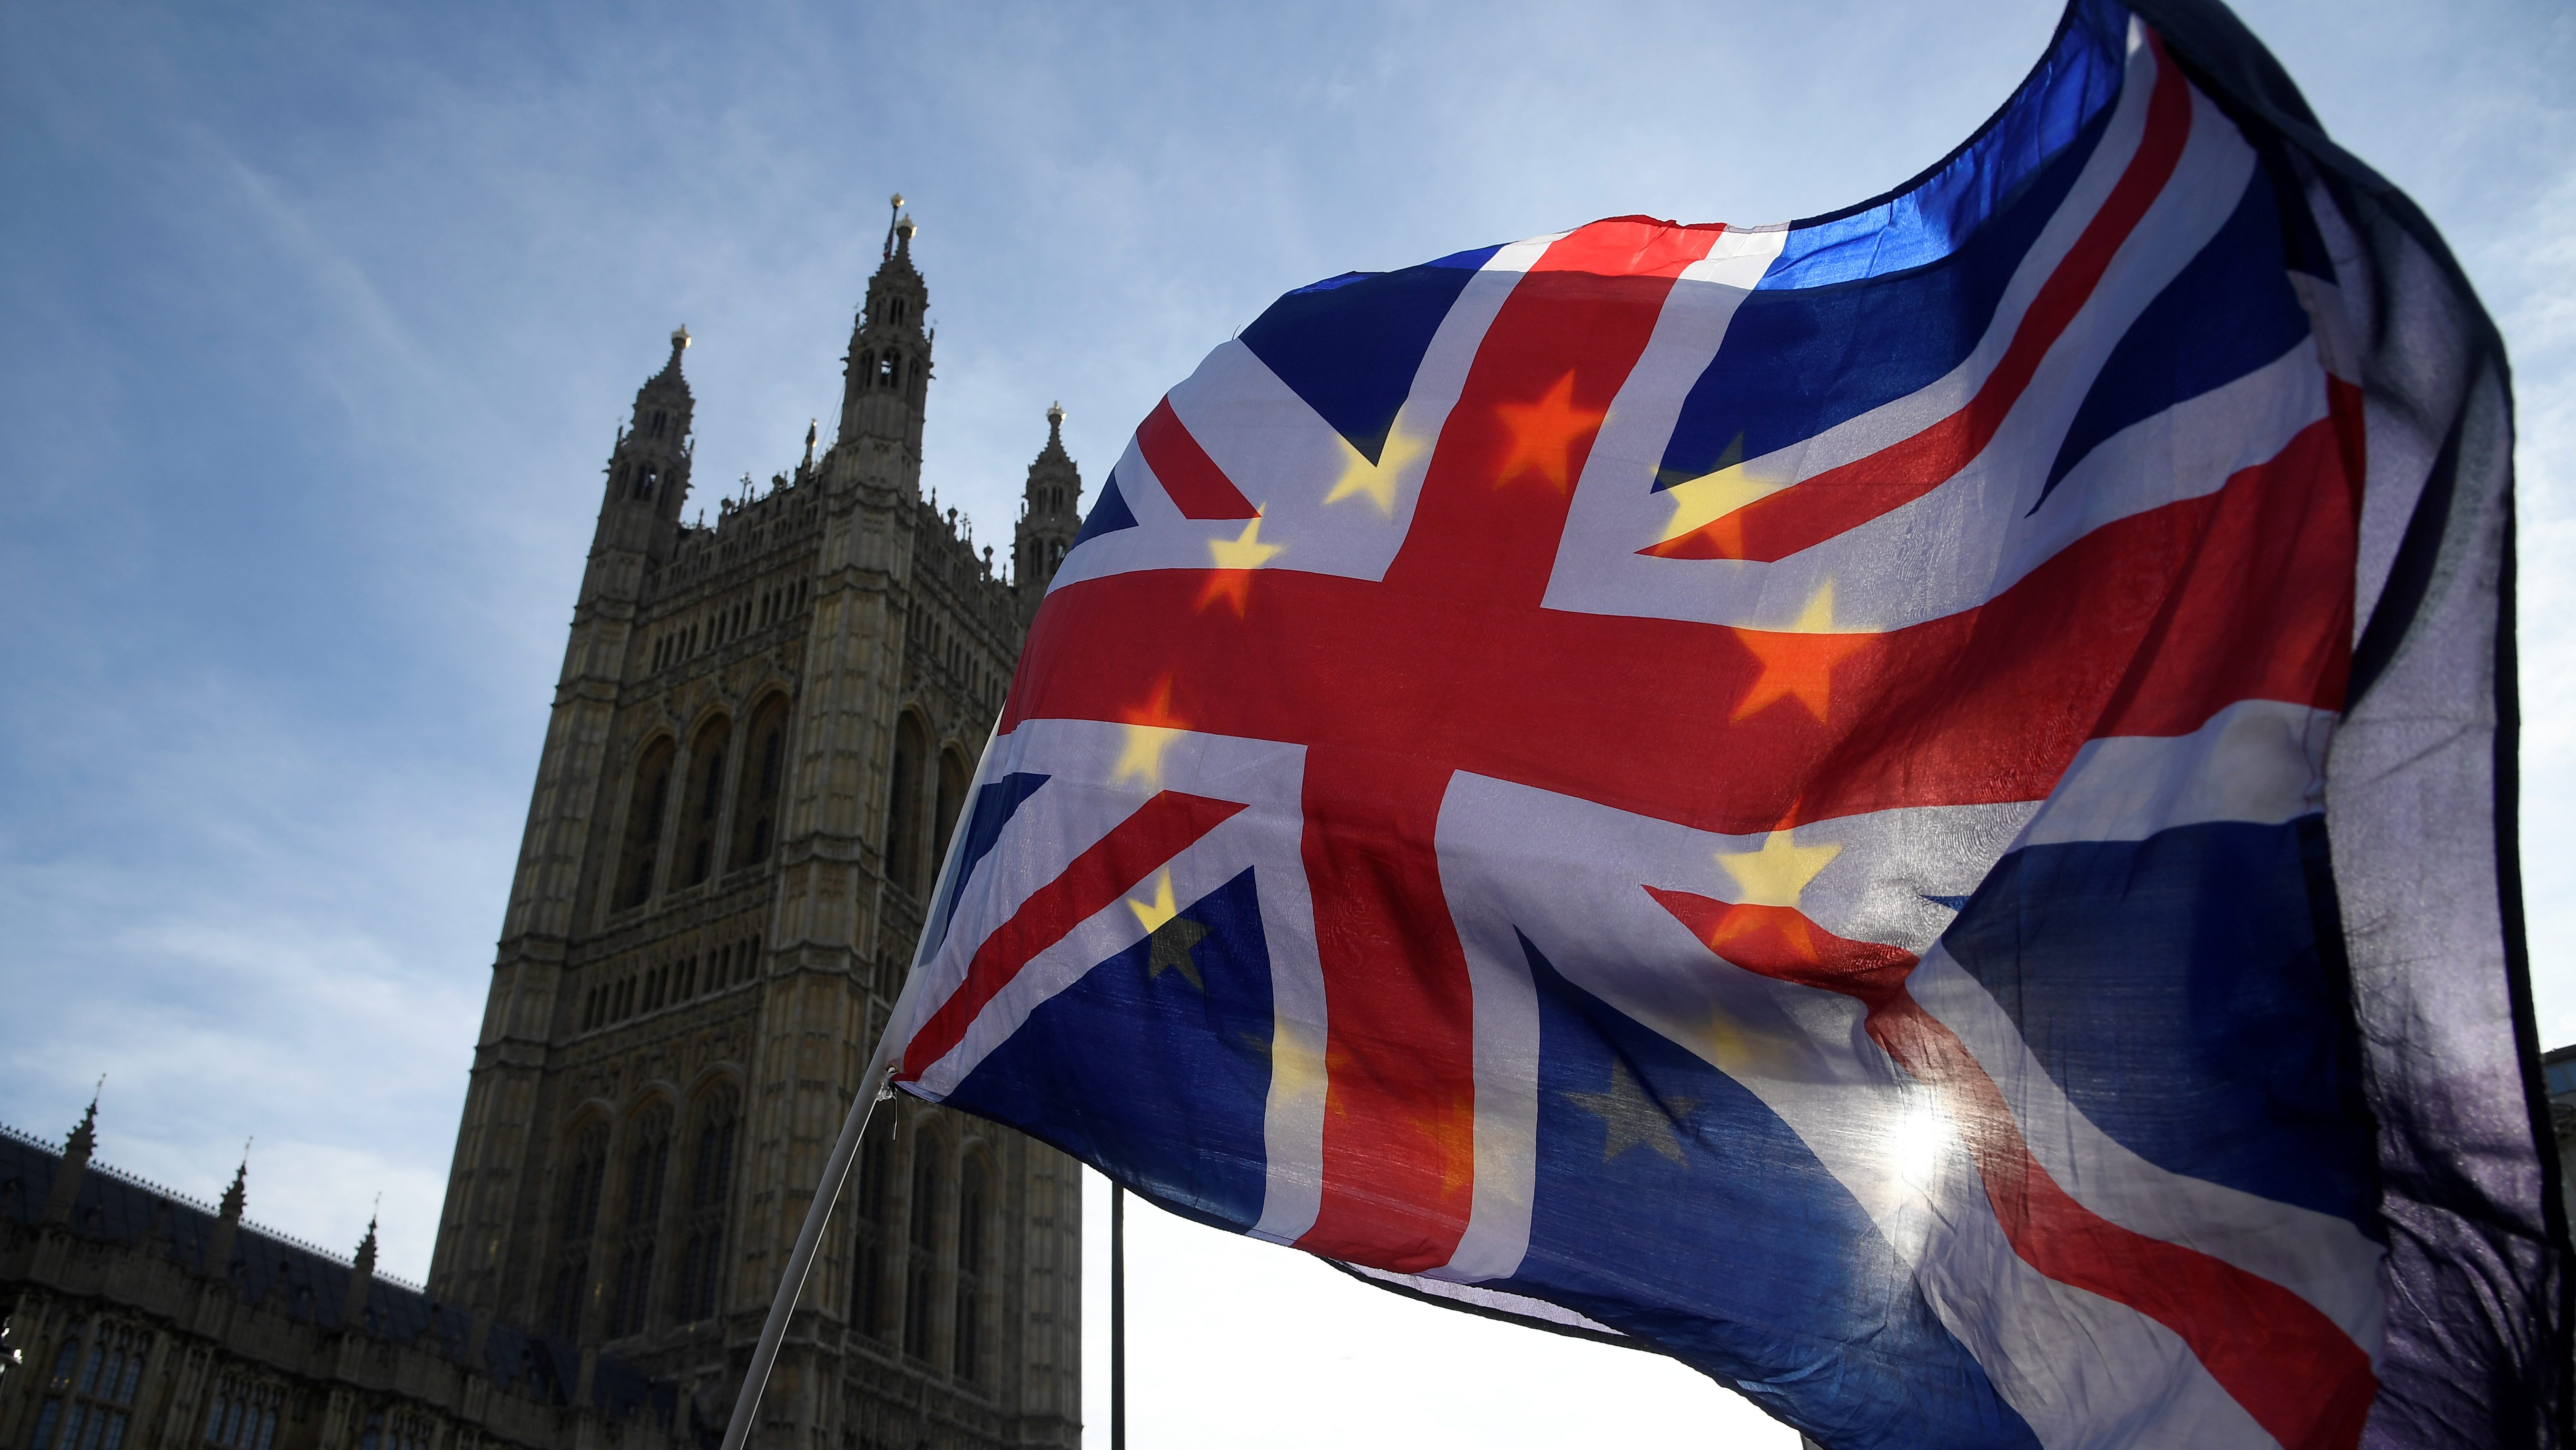 Anti-Brexit demonstrators wave EU and Union flags outside the Houses of Parliament in London, Britain, January 30, 2018. REUTERS/Toby Melville - RC1A41866470